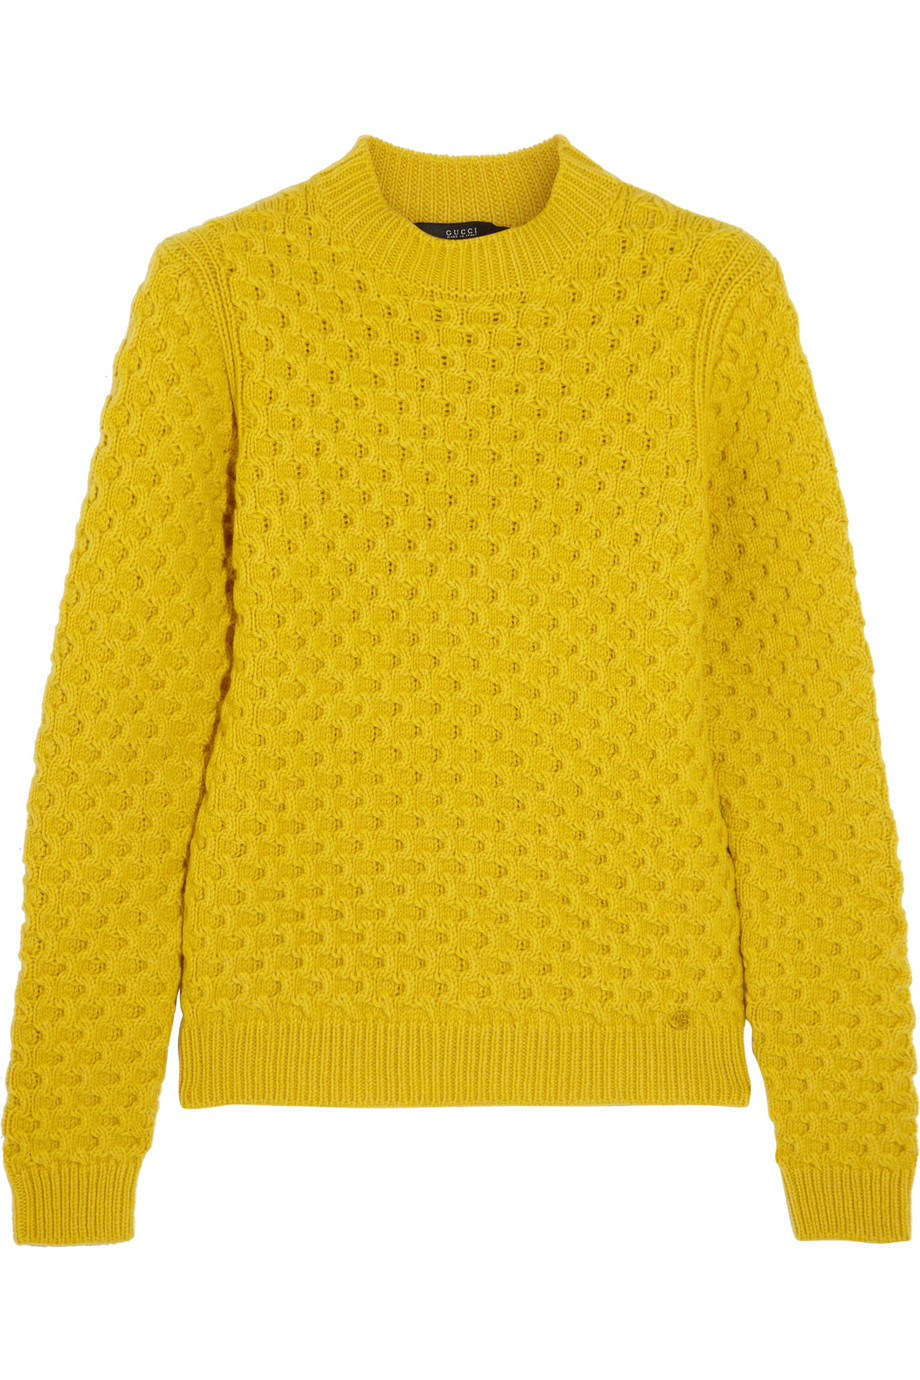 Gucci Waffle-knit Wool Sweater in Yellow | Lyst